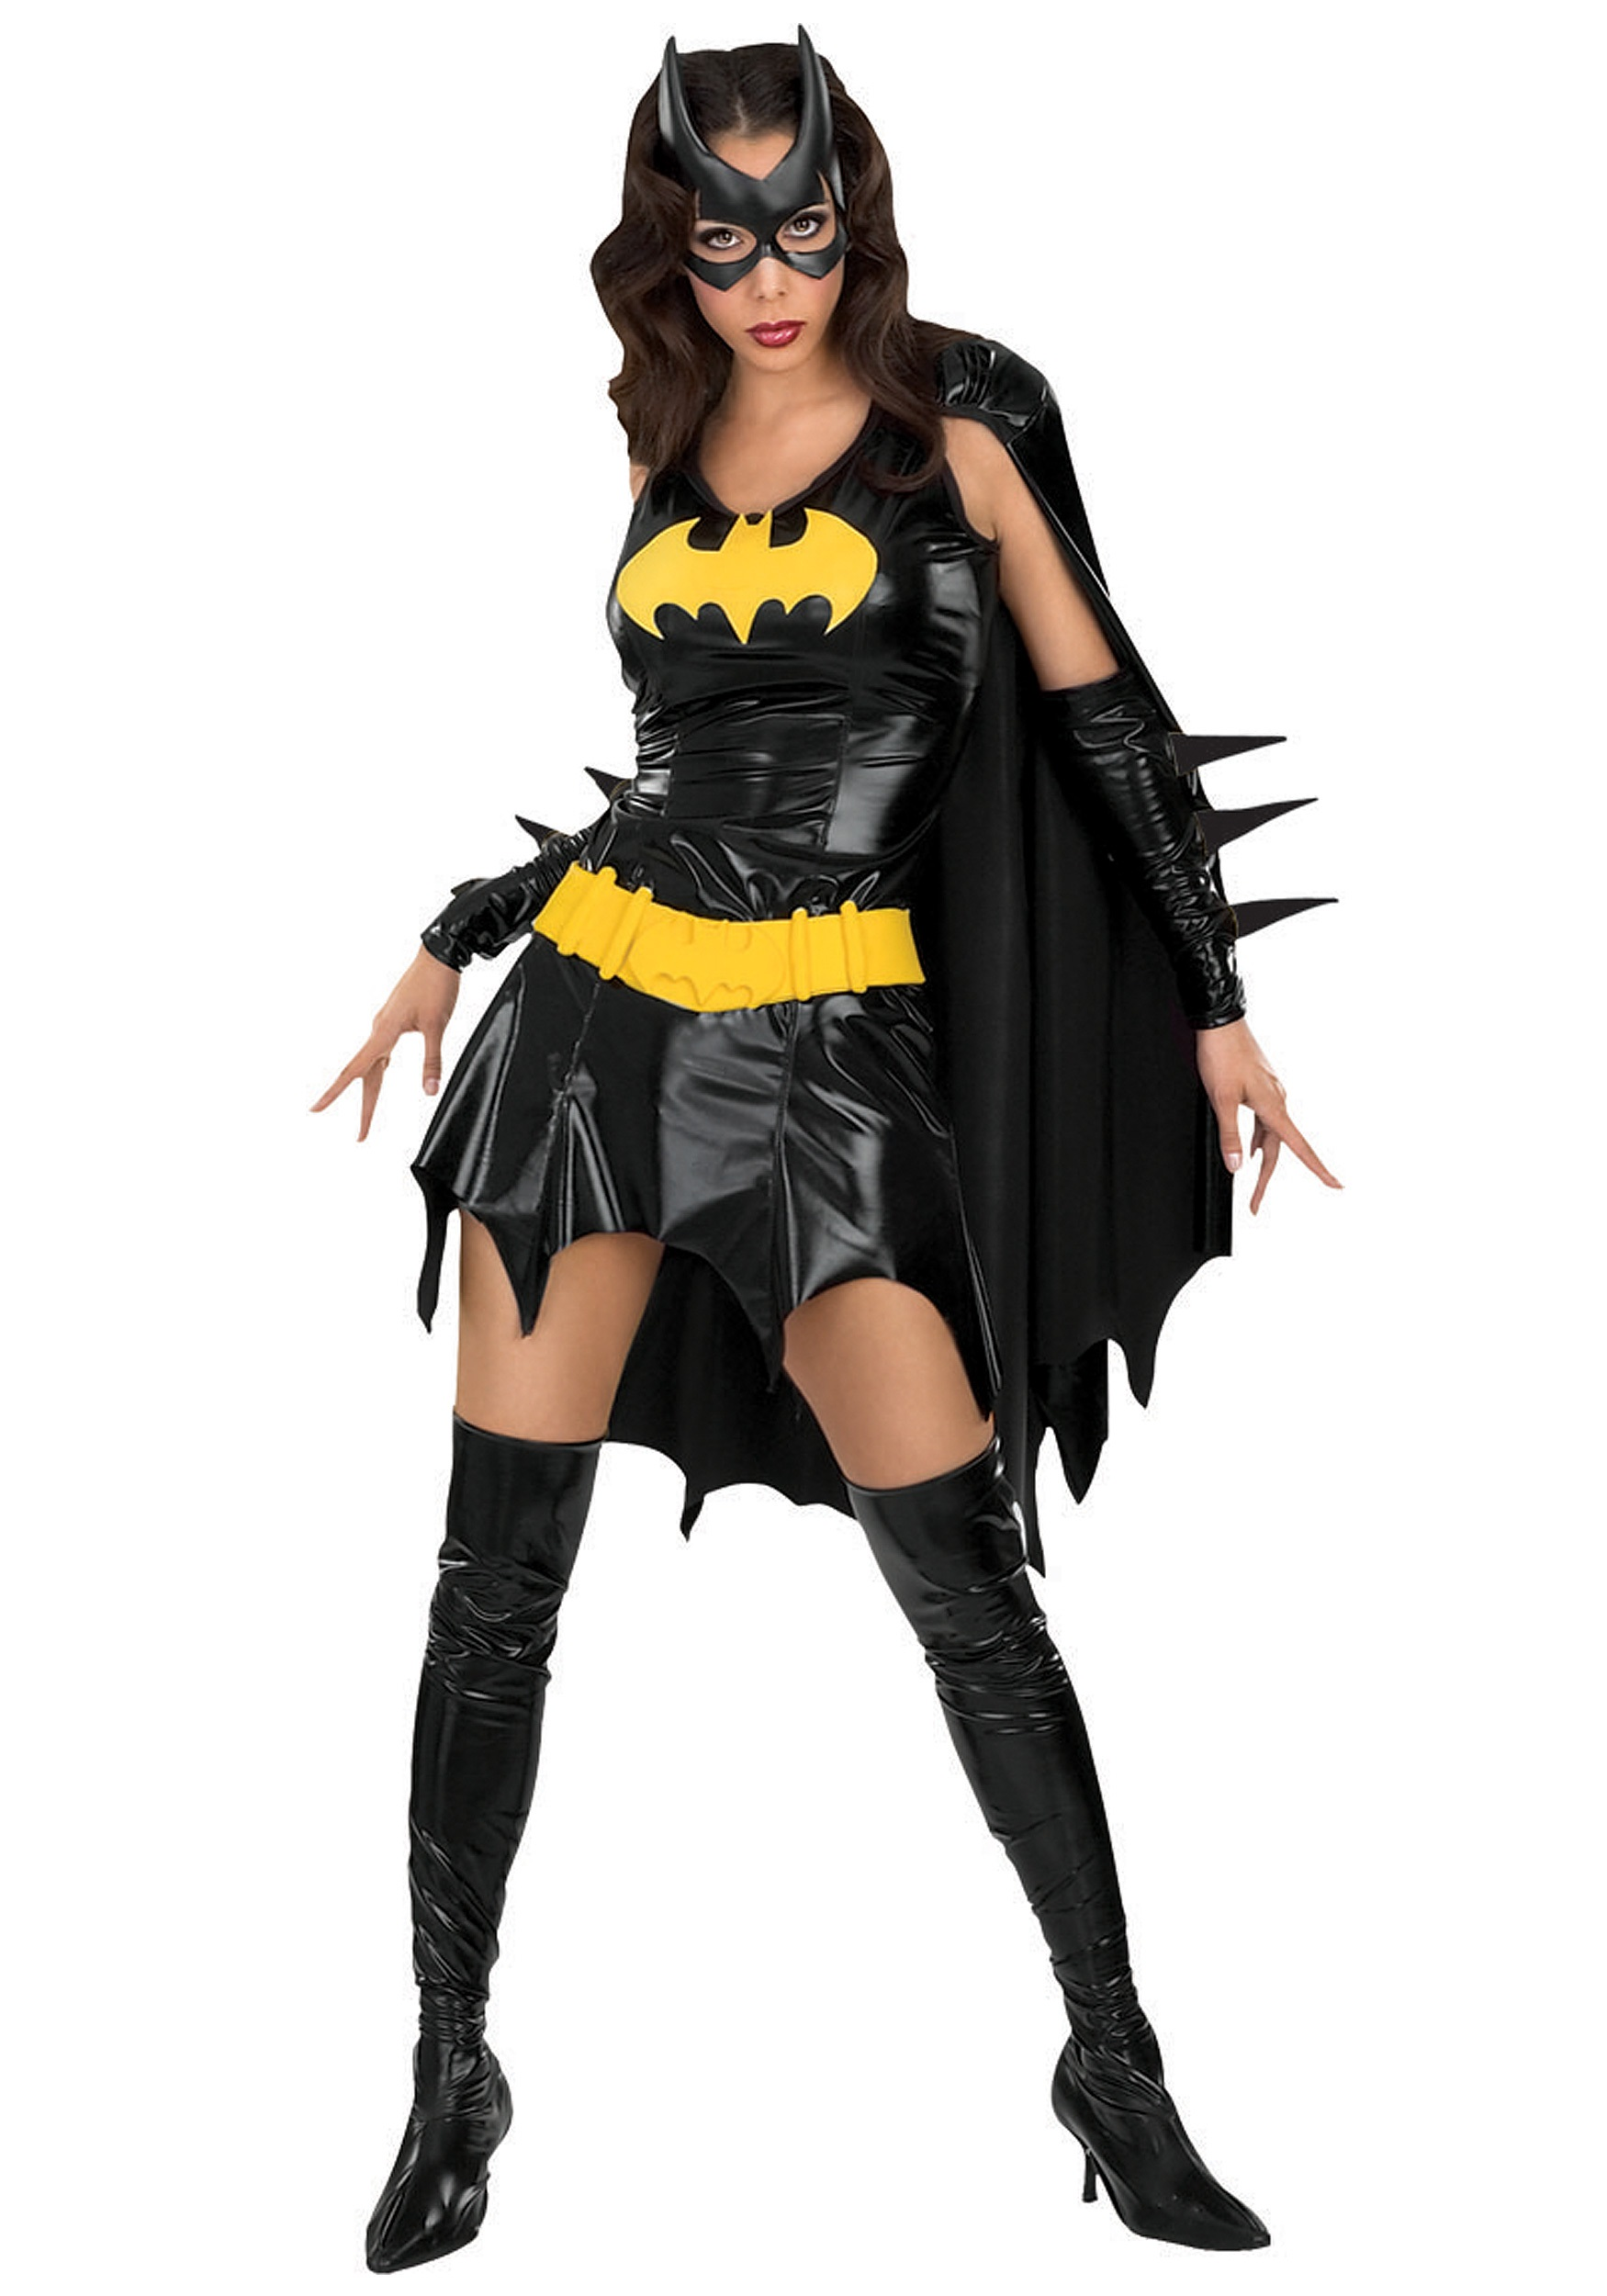 sc 1 st  Halloween Costumes : batman halloween costume for girls  - Germanpascual.Com